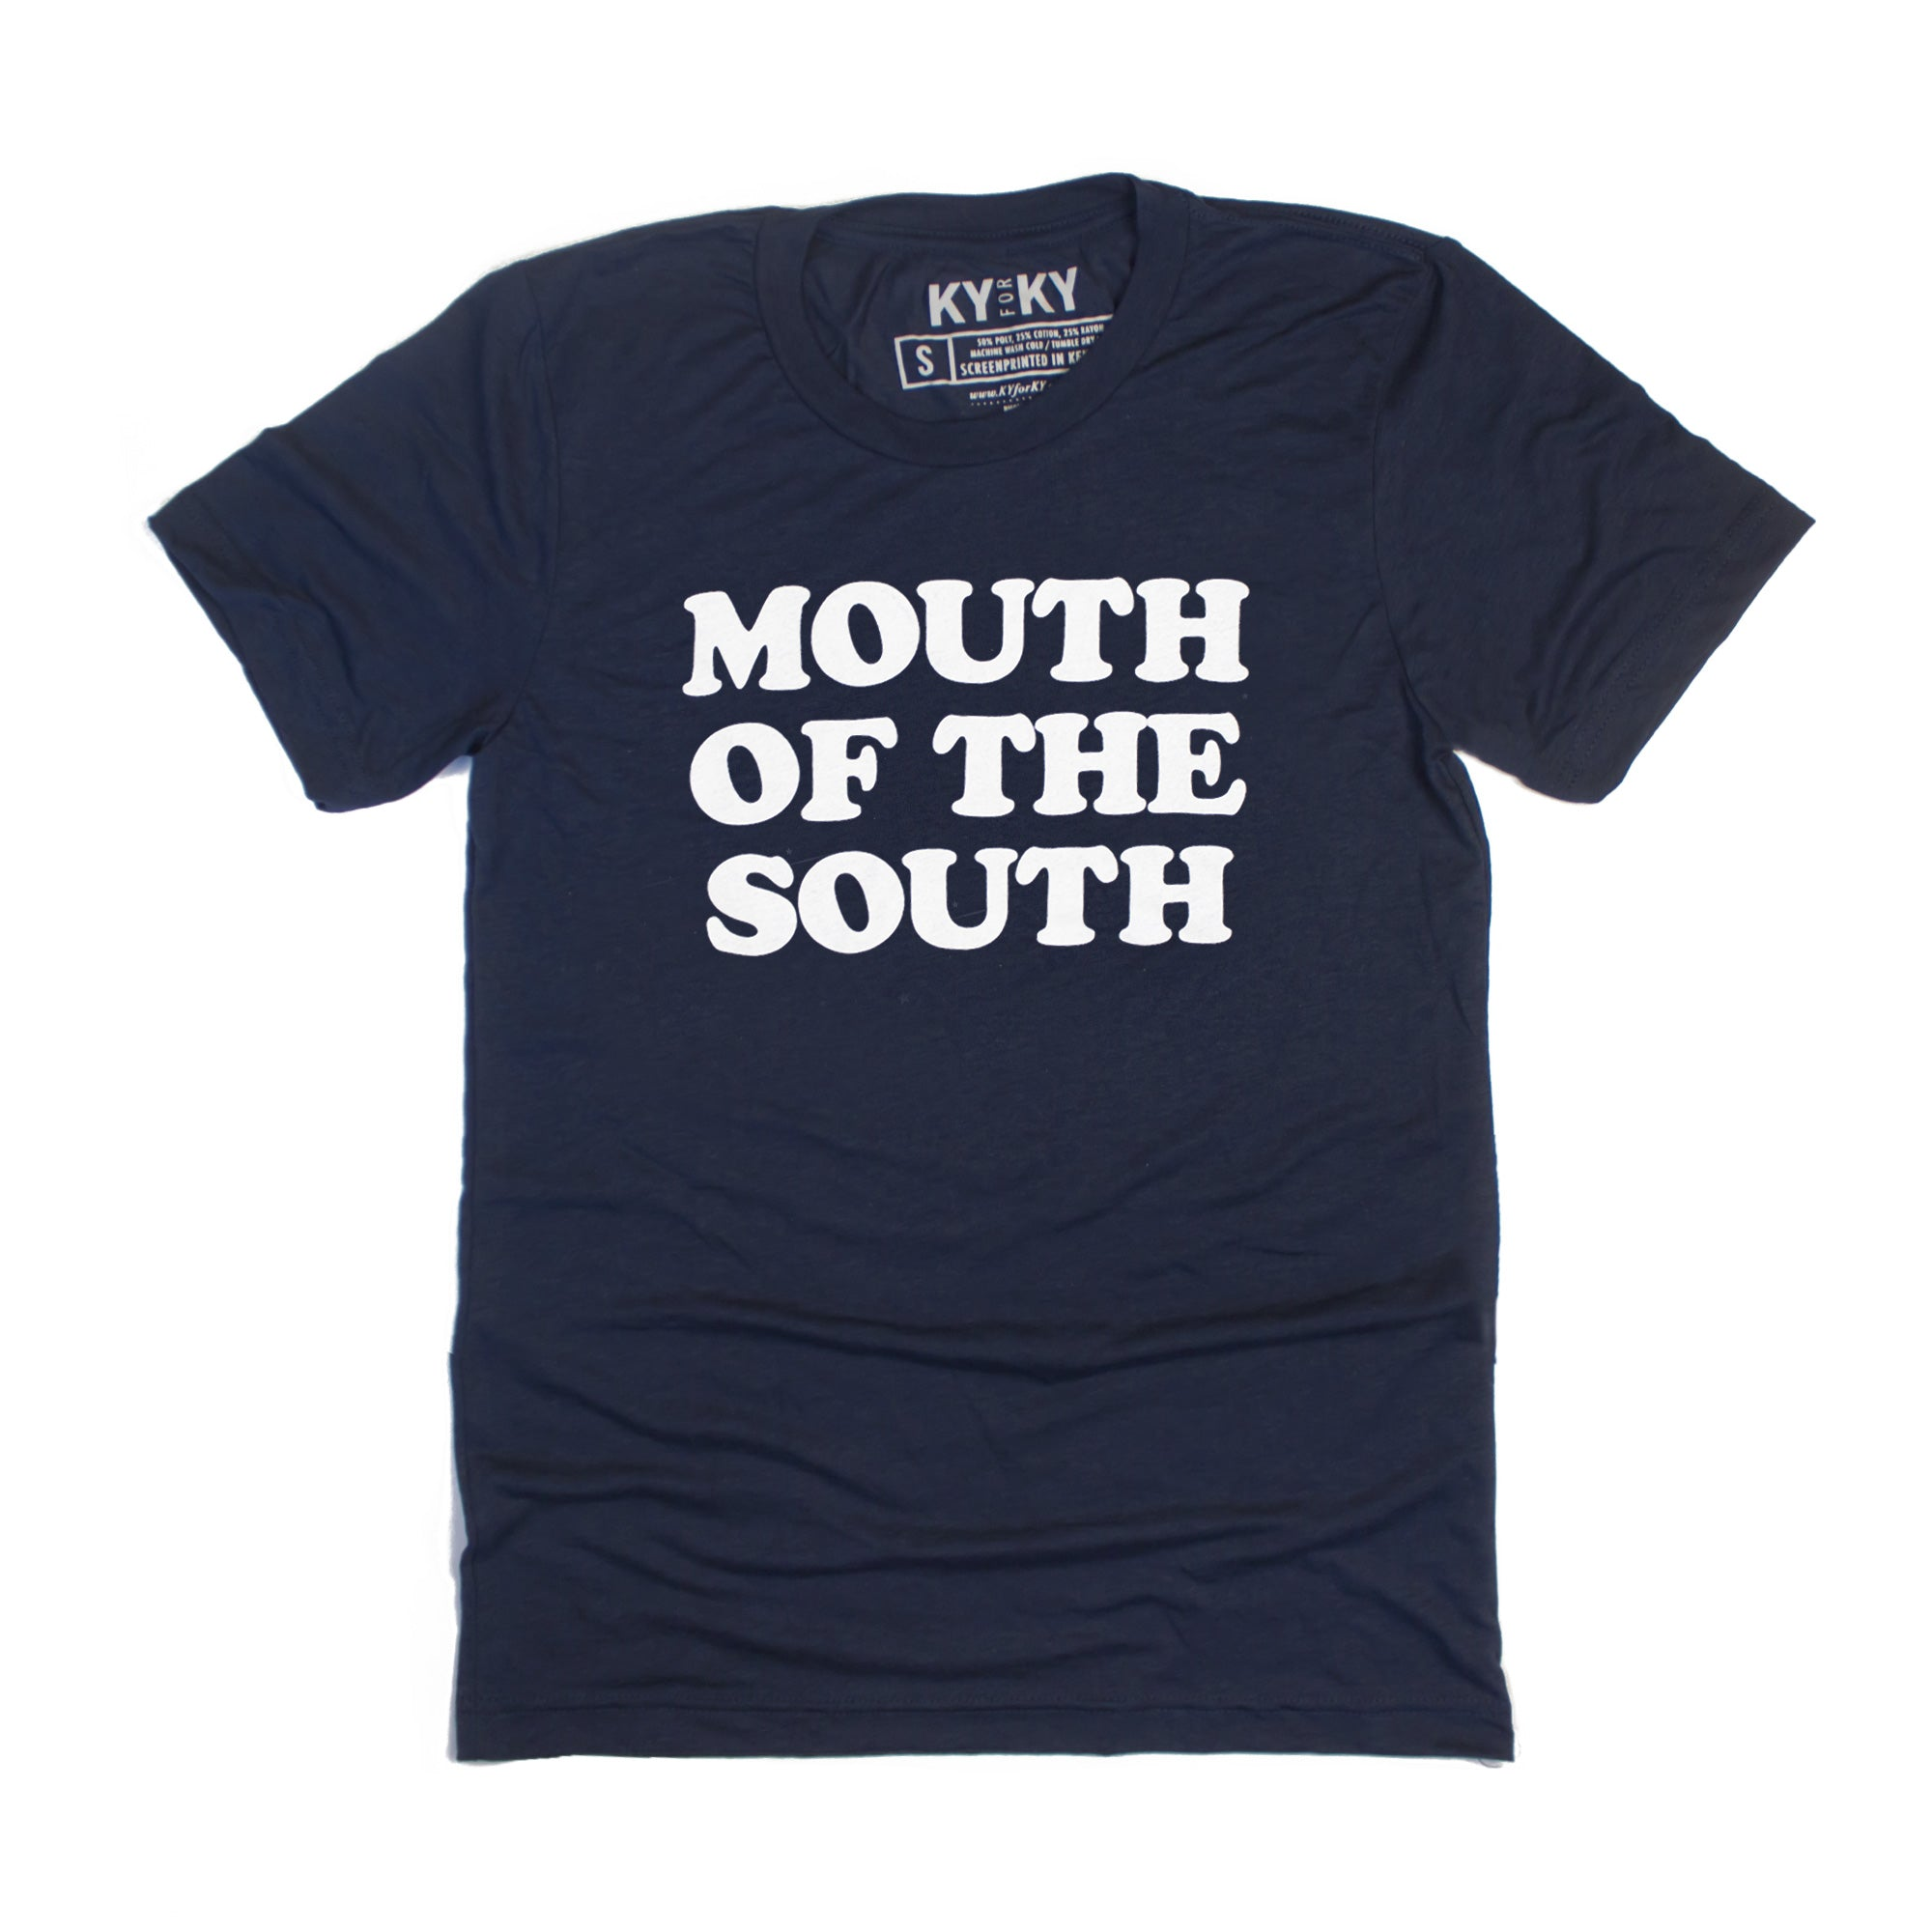 Mouth of The South T-Shirt-T-Shirt-KY for KY Store